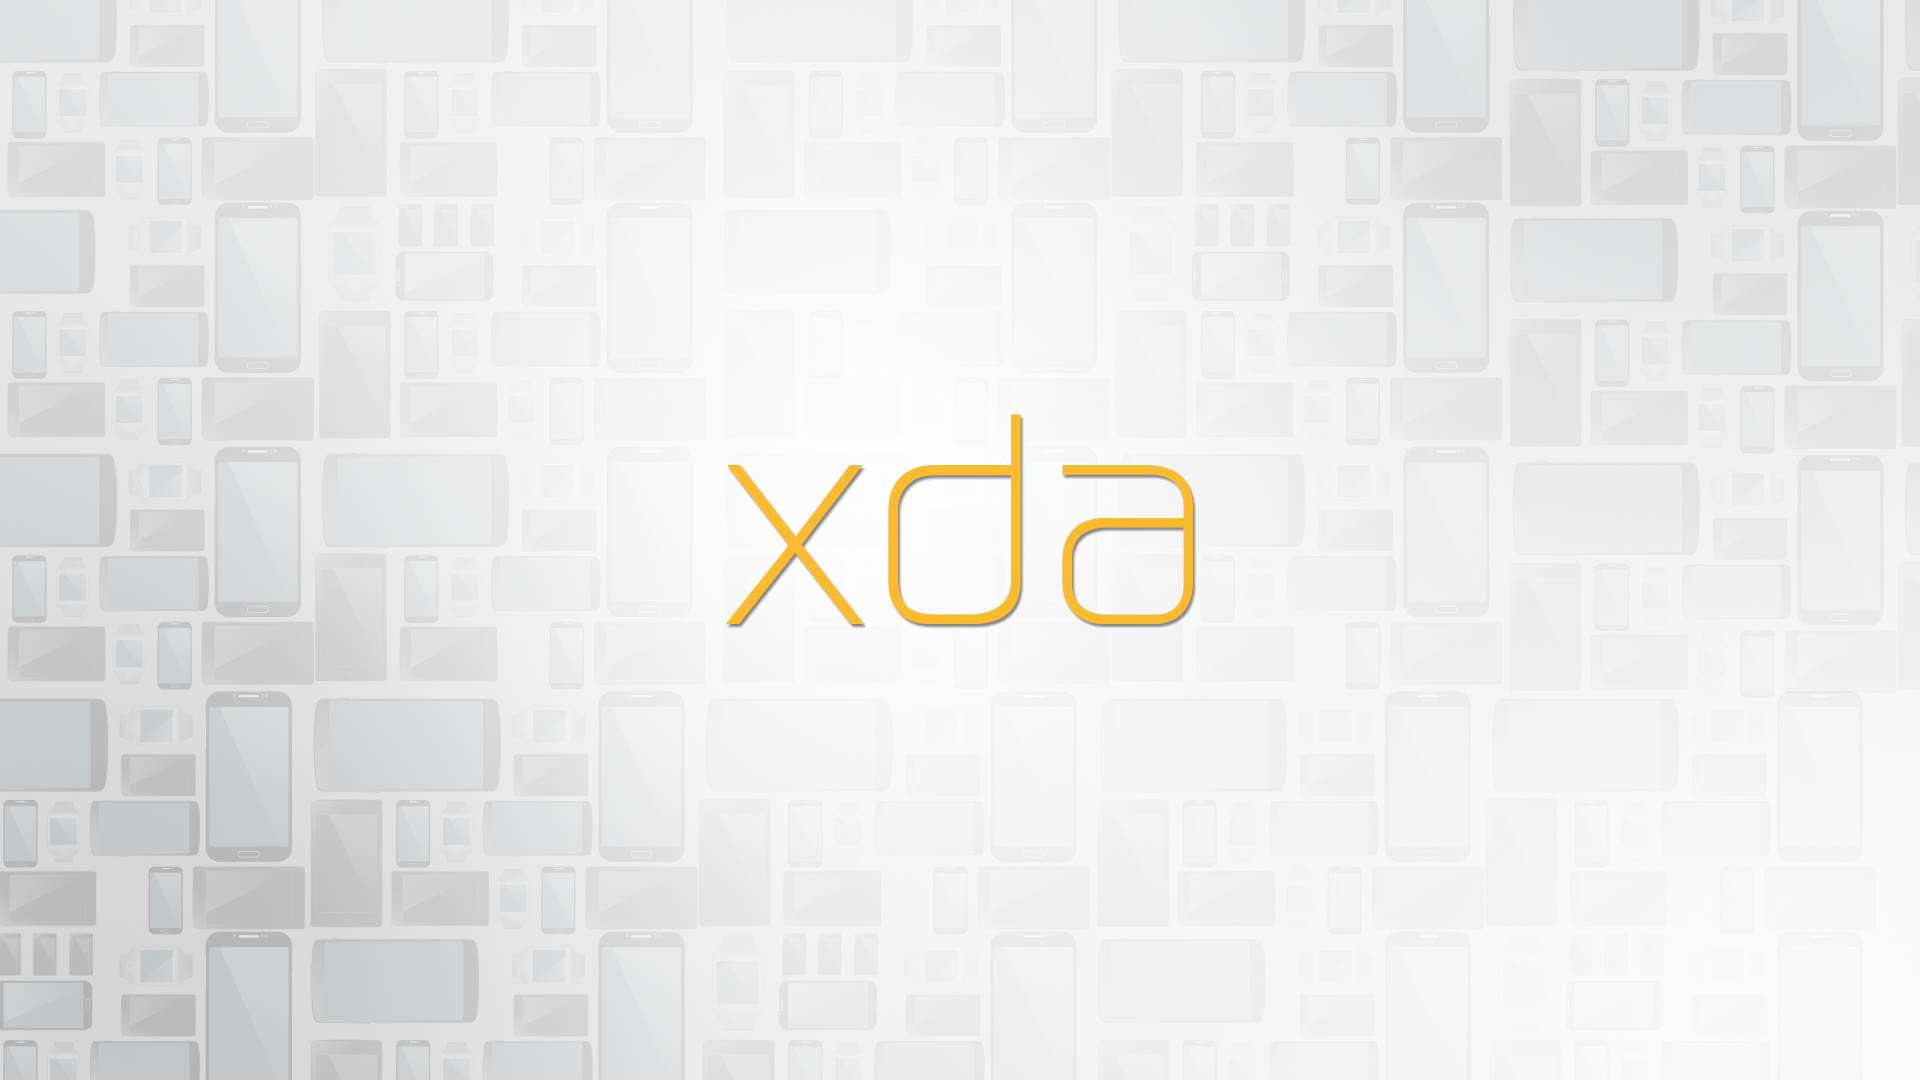 Hd wallpaper xda - The Devices Behind The Xda Team